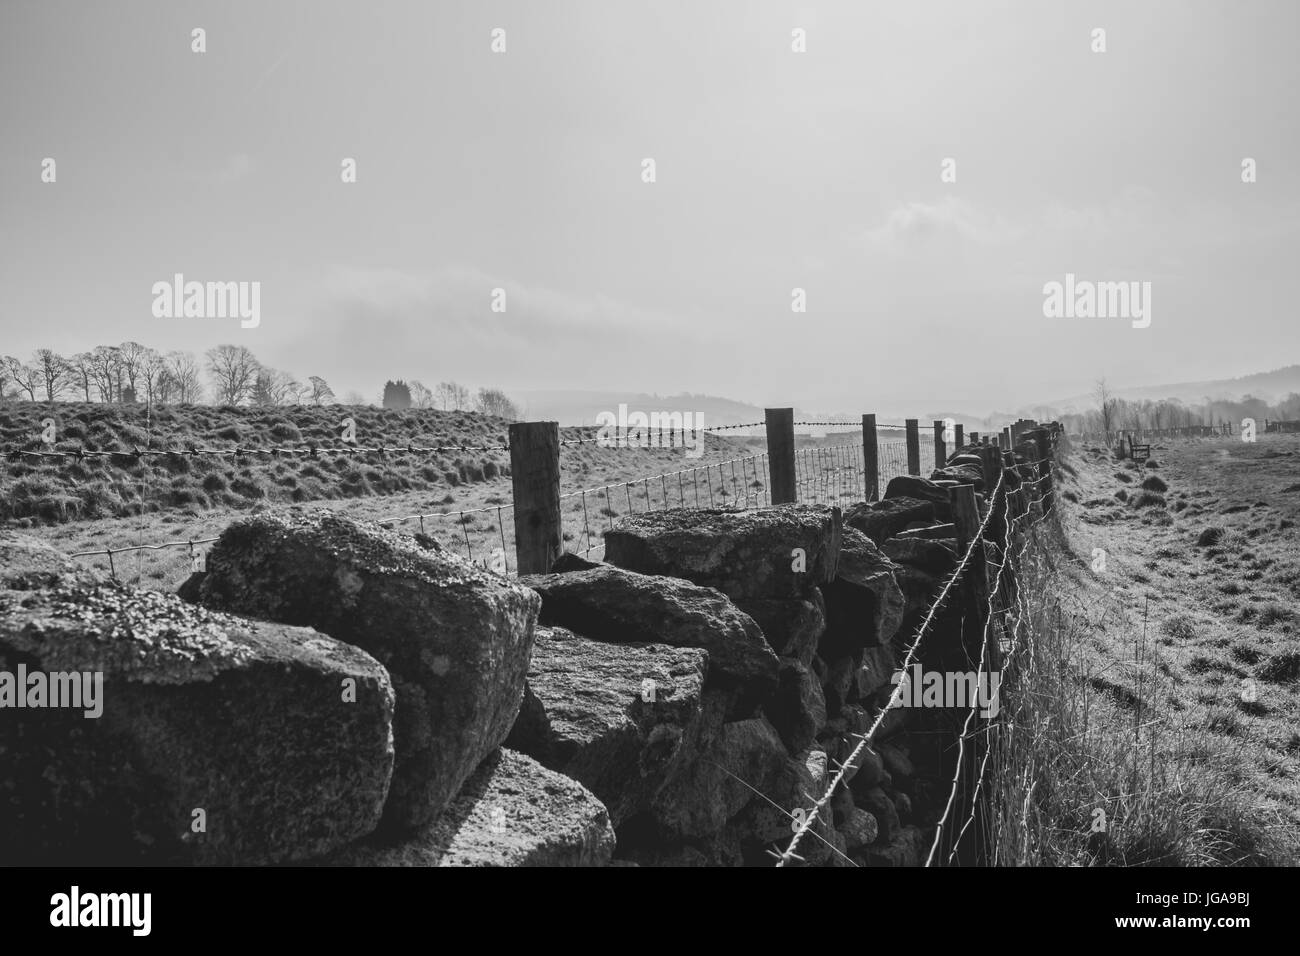 Black and white photo of the countryside featuring a dry stone wall - Stock Image